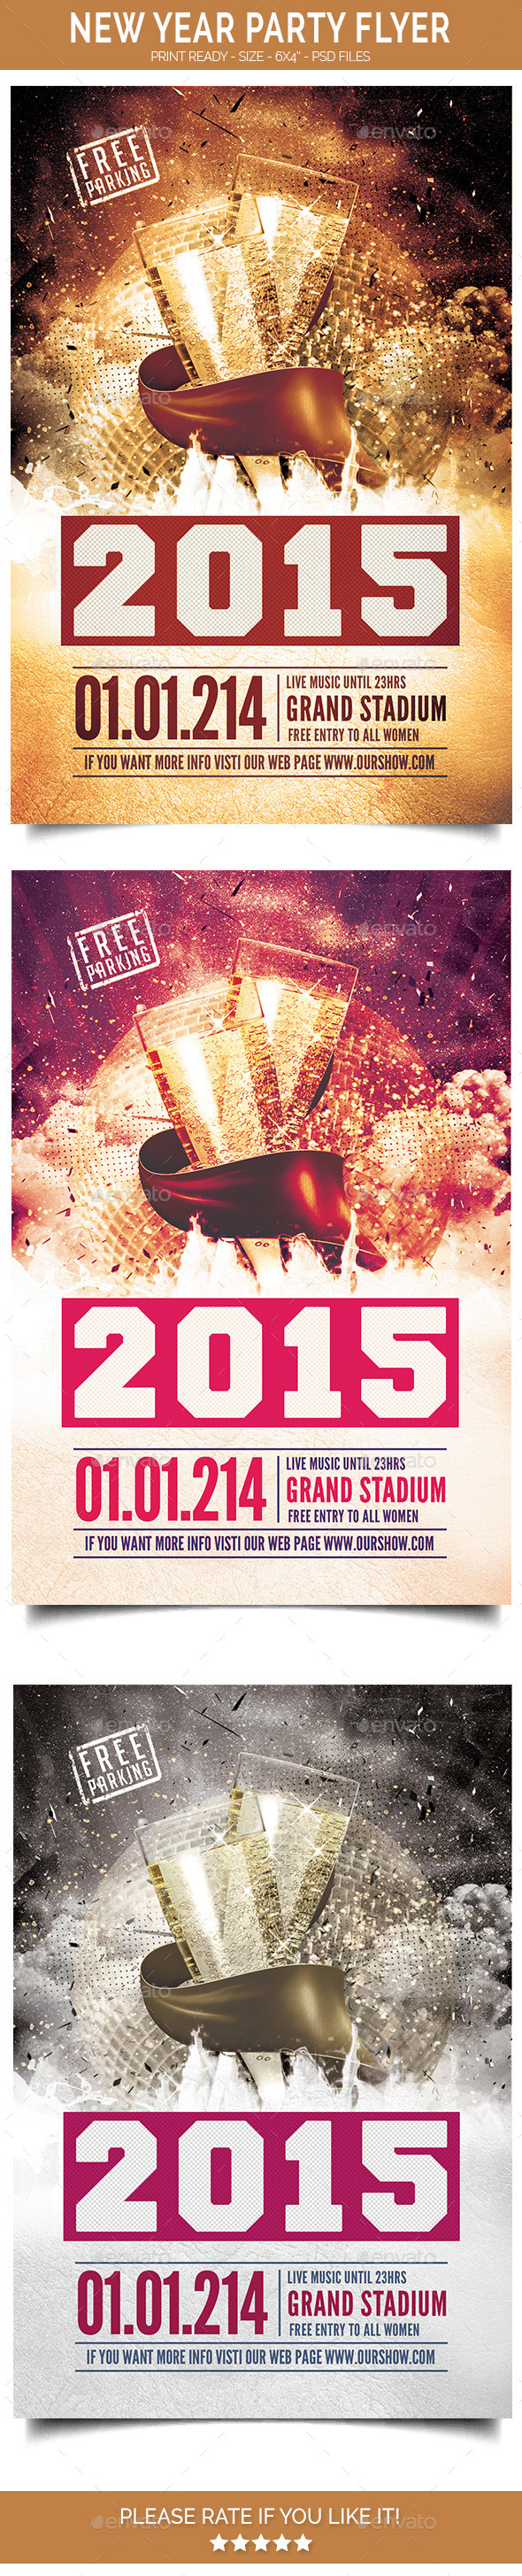 GraphicRiver New Year Party Flyer 9819799